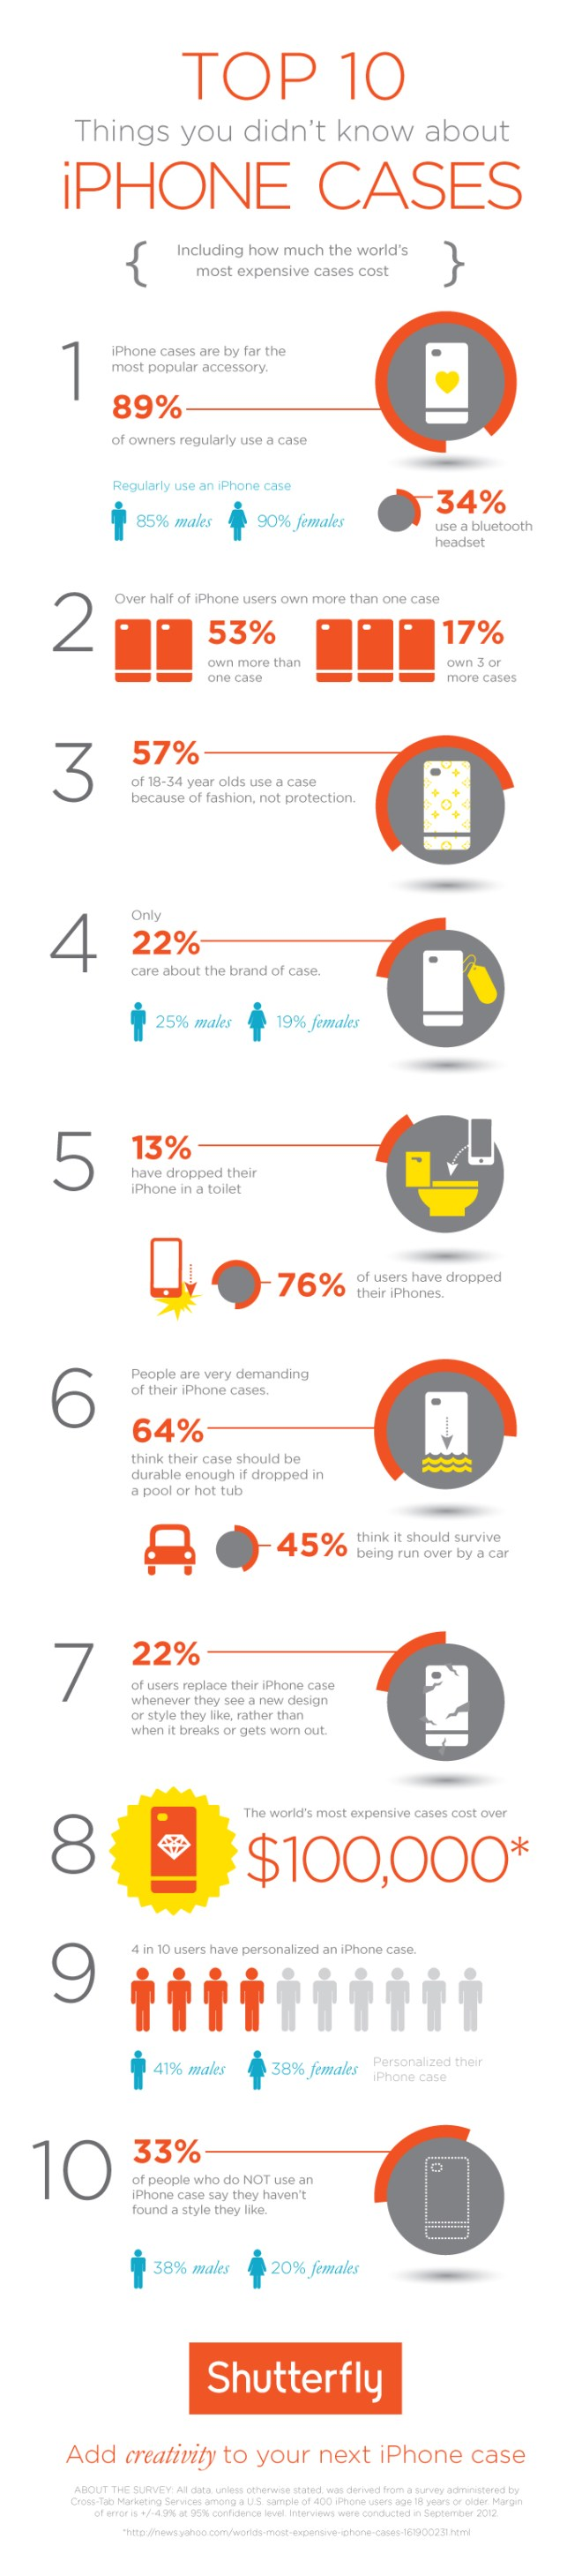 Shutterfly-iPhone-Cases-Infographic